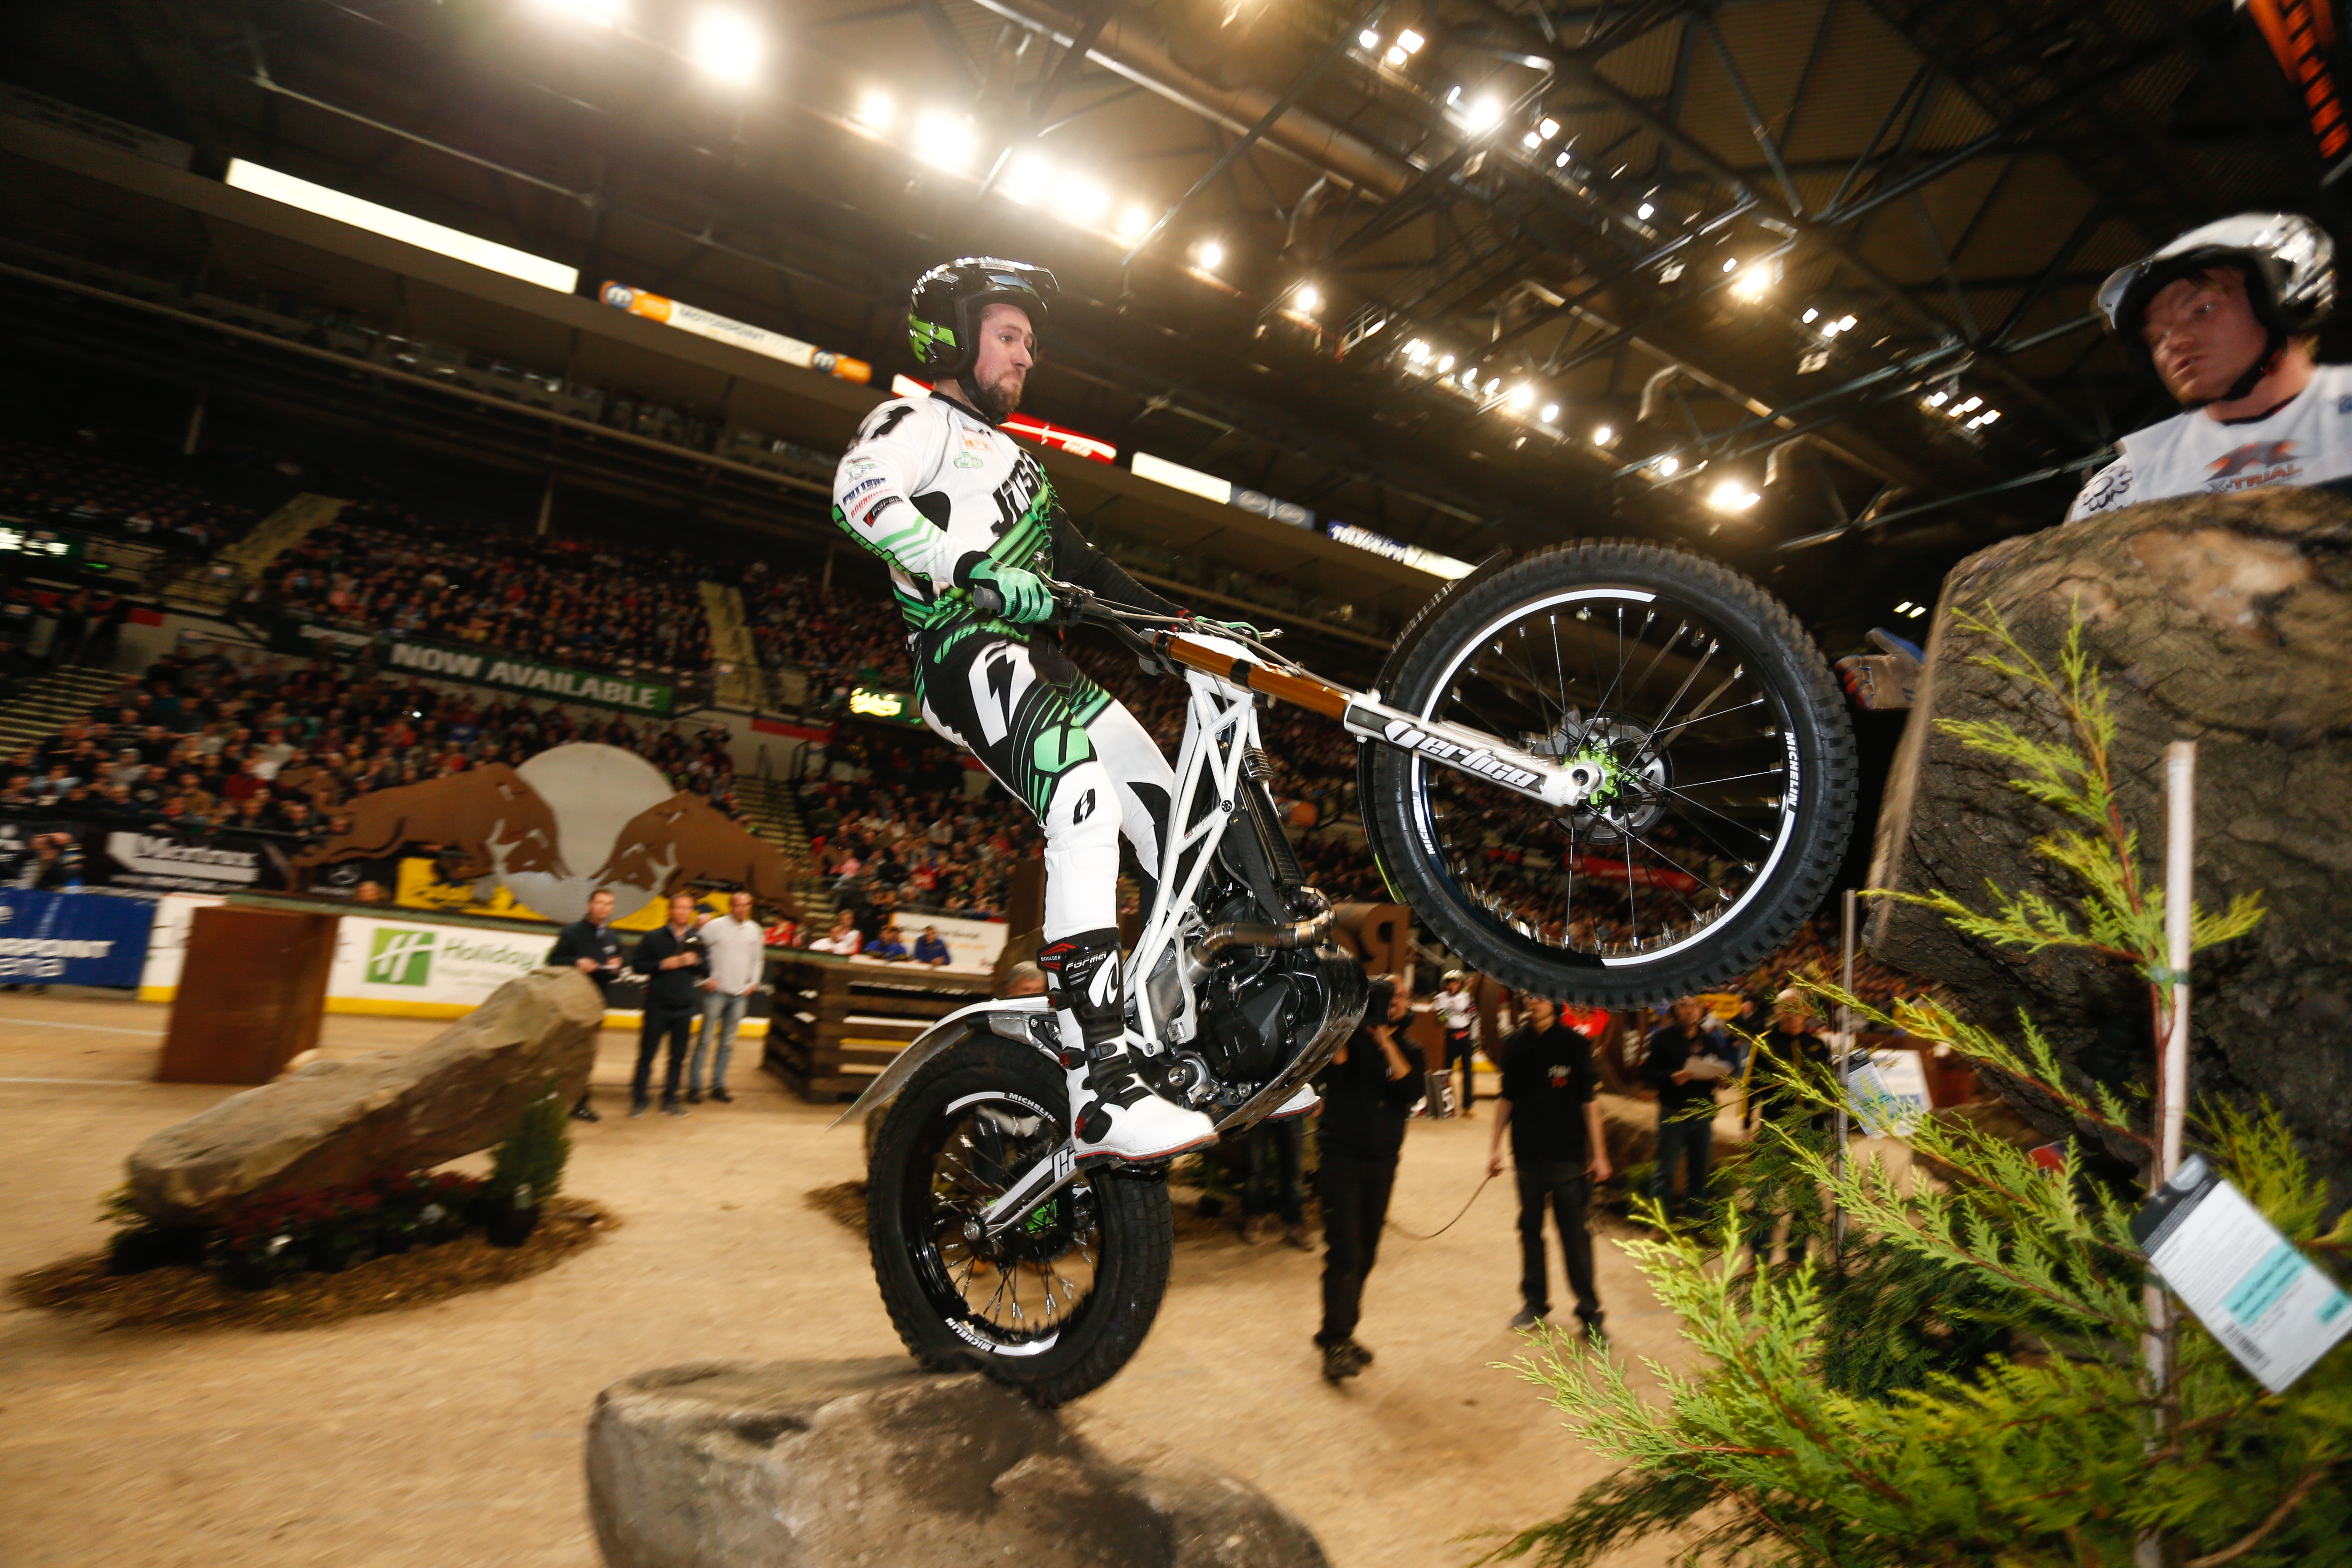 MOTORPOINT TO HOST EXCLUSIVE TRIAL BIKE SHOW IN CHINGFORD ...